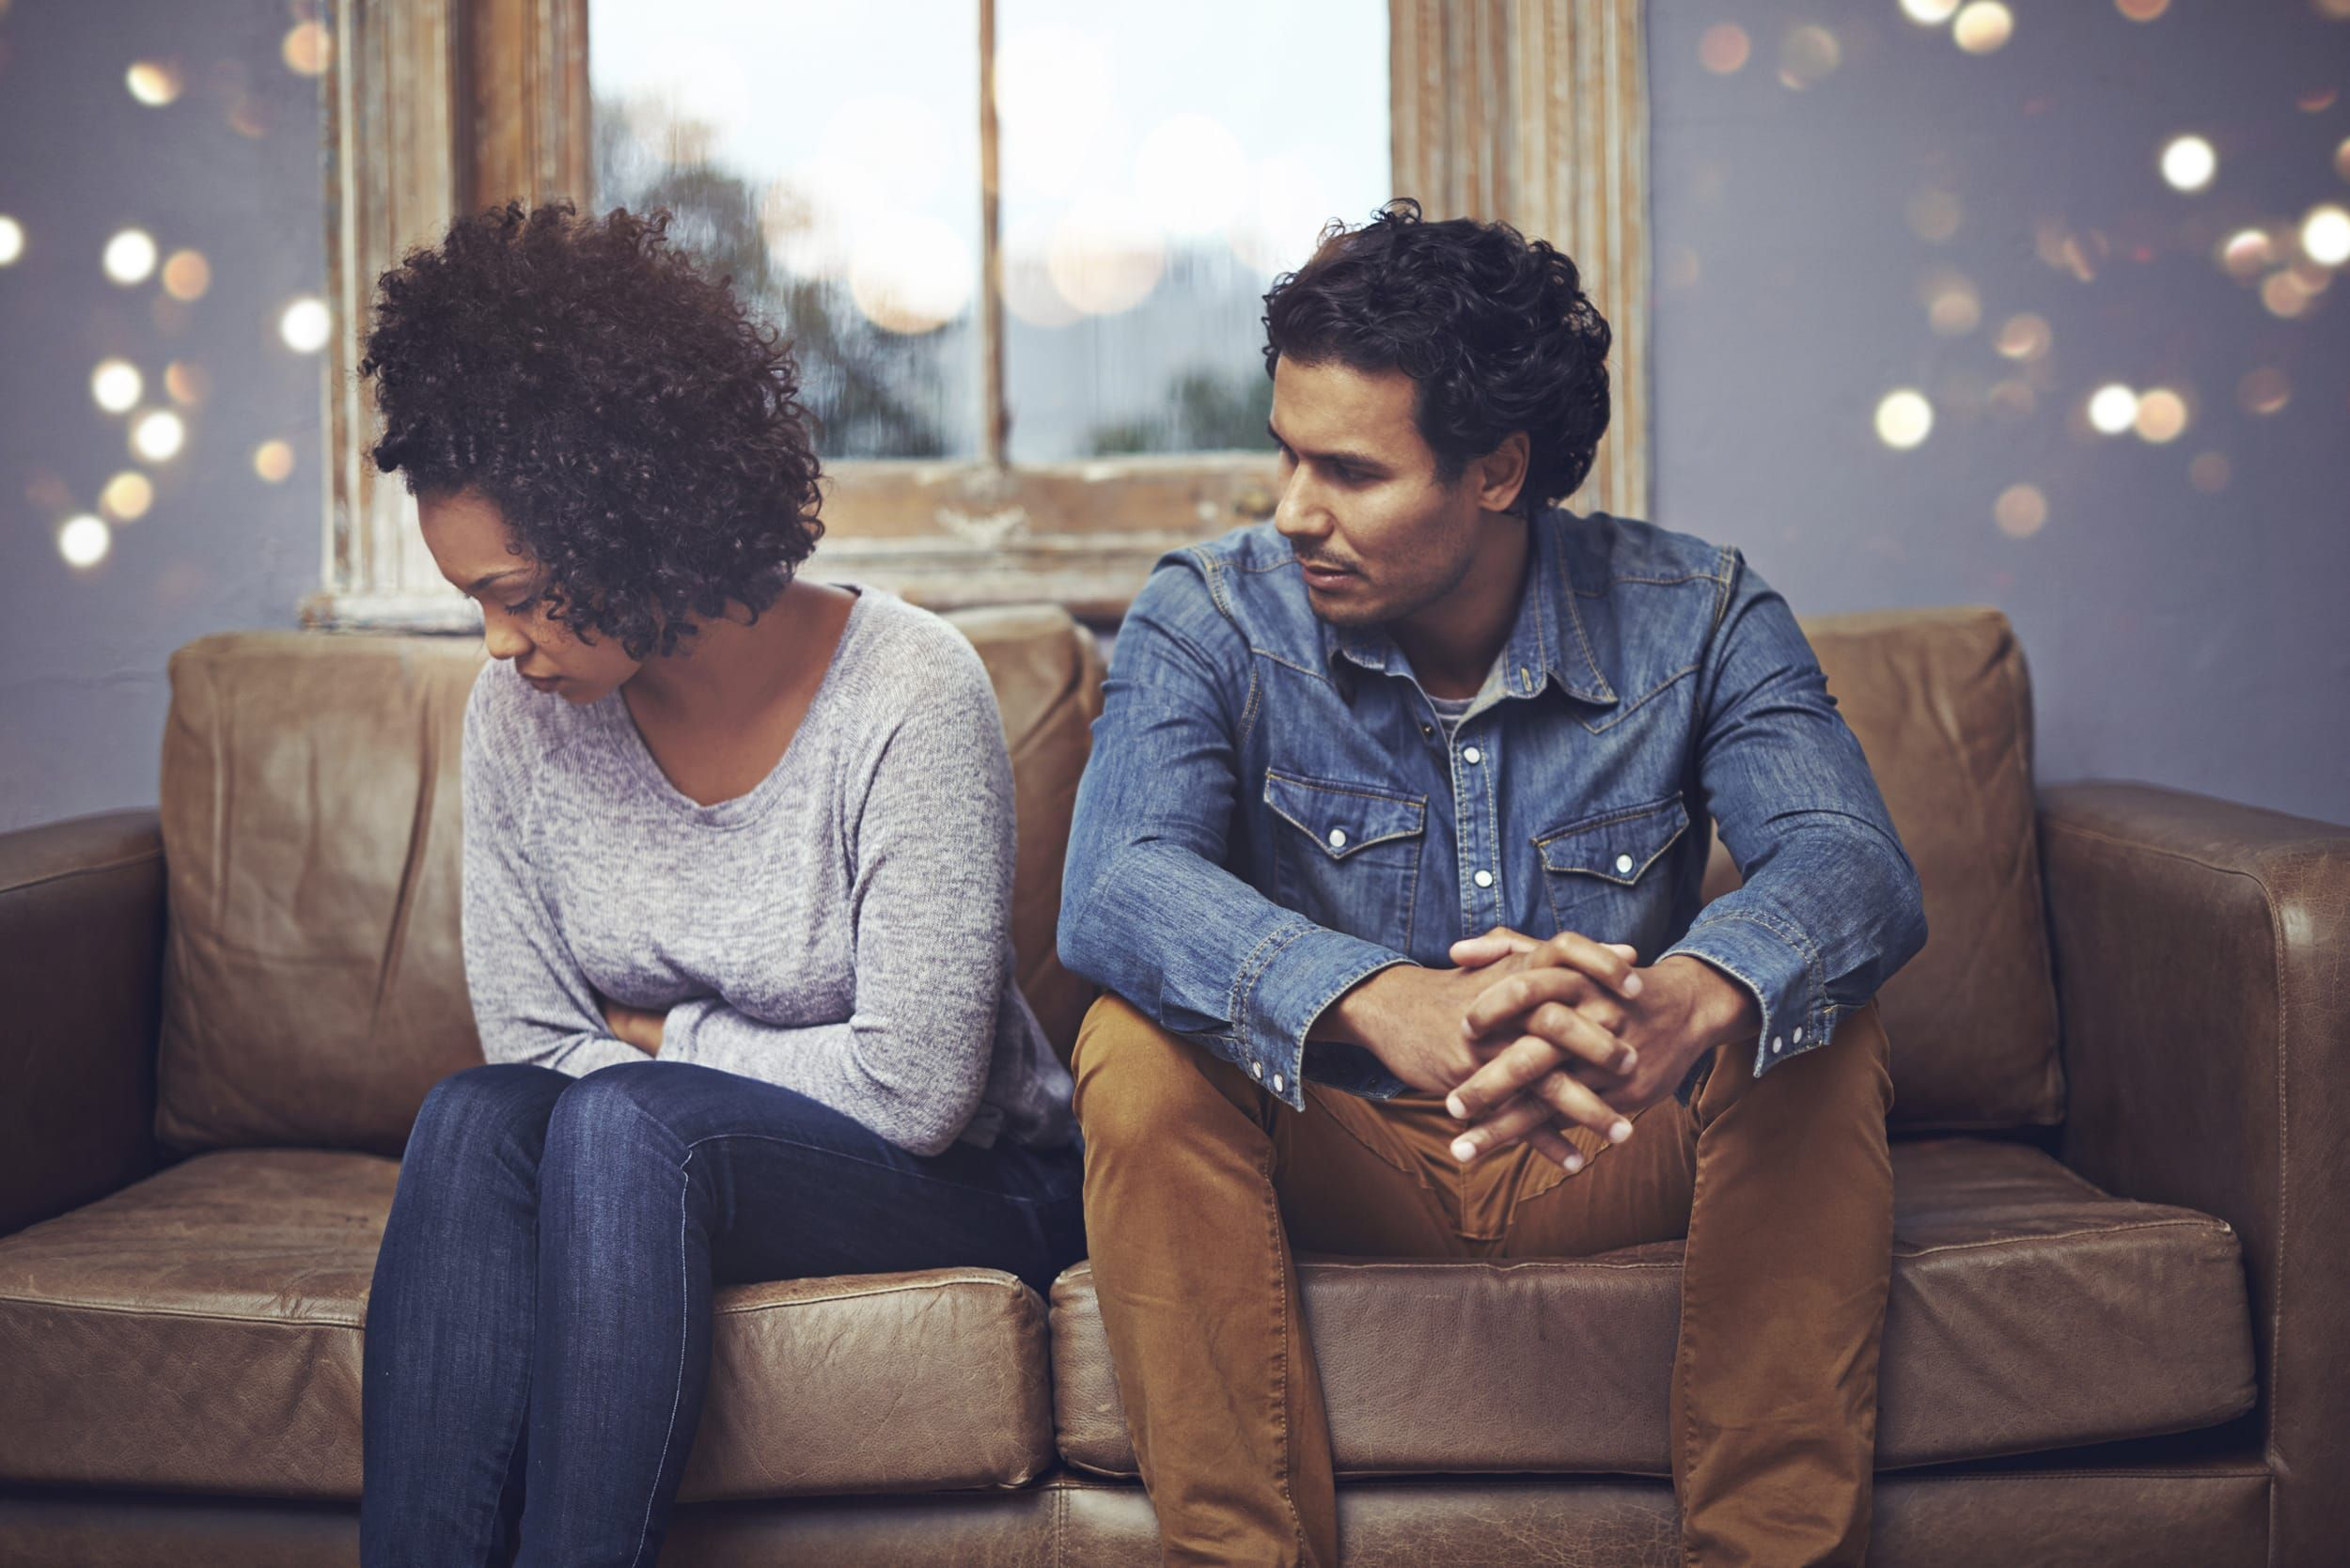 The 1 Thing Couples Fight About